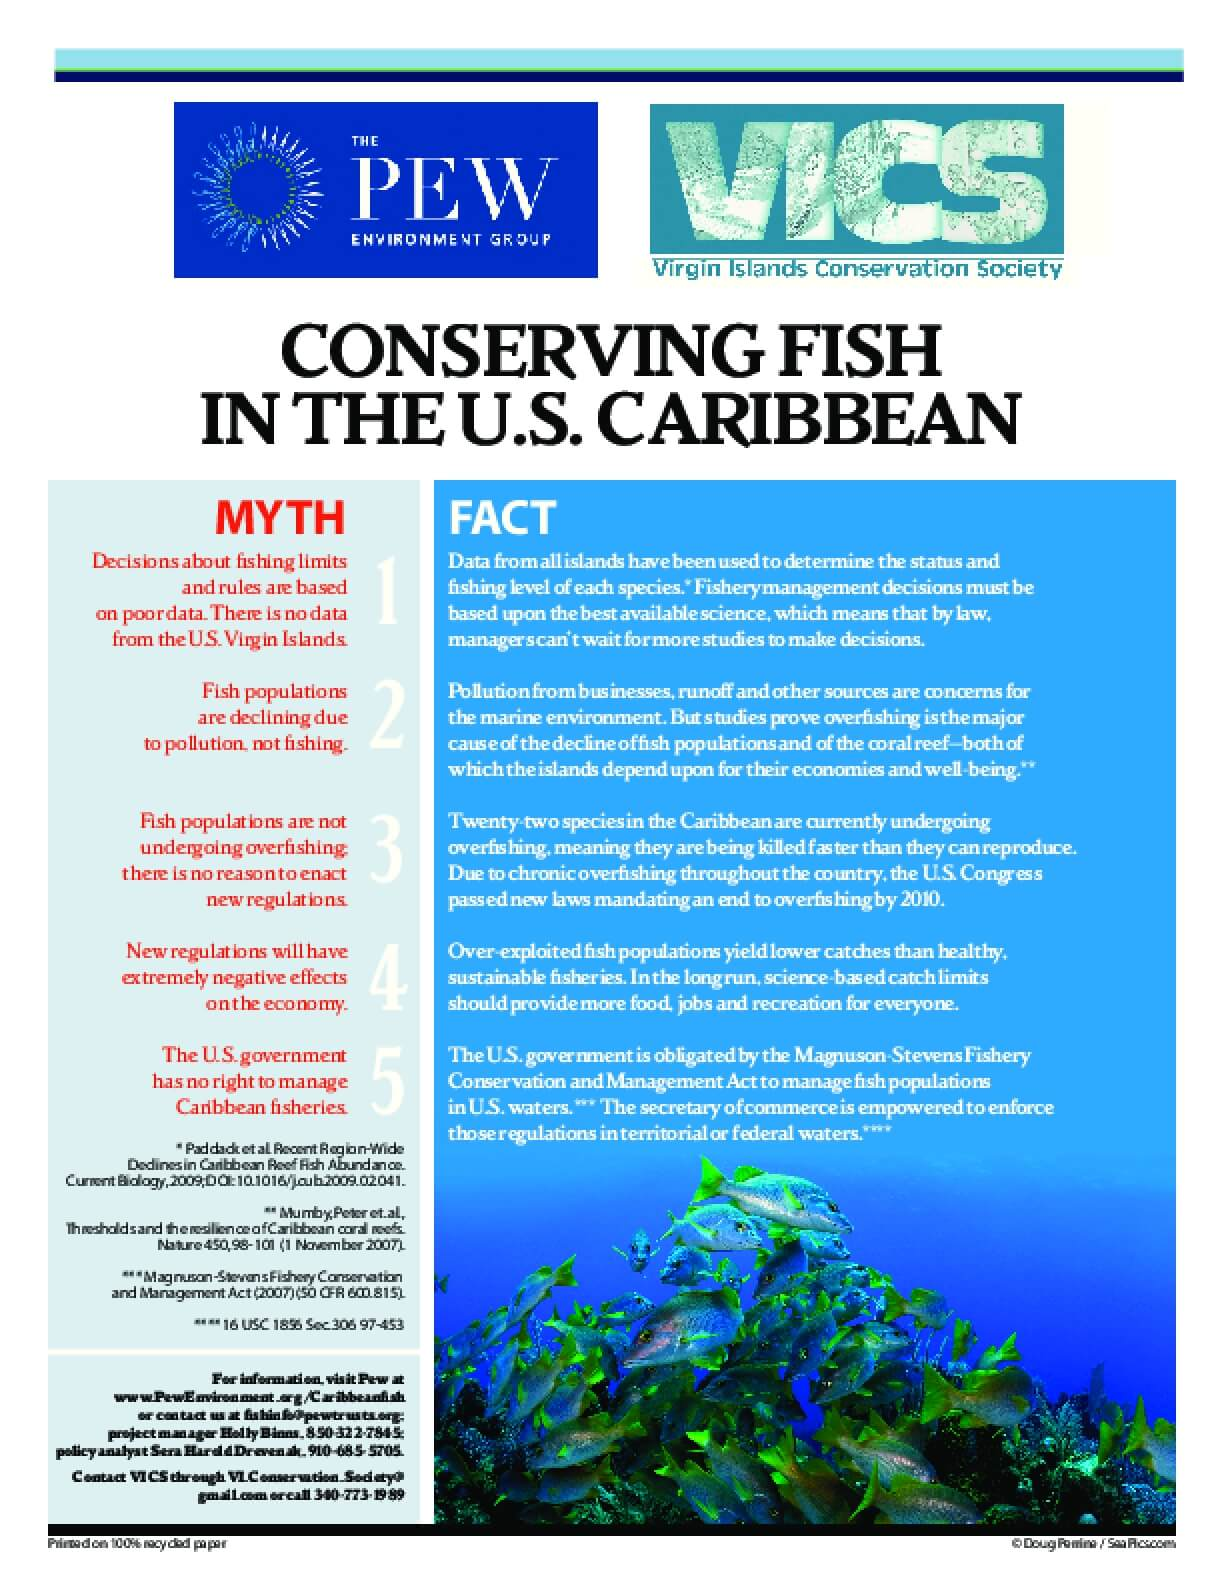 Conserving Fish in the U.S. Caribbean